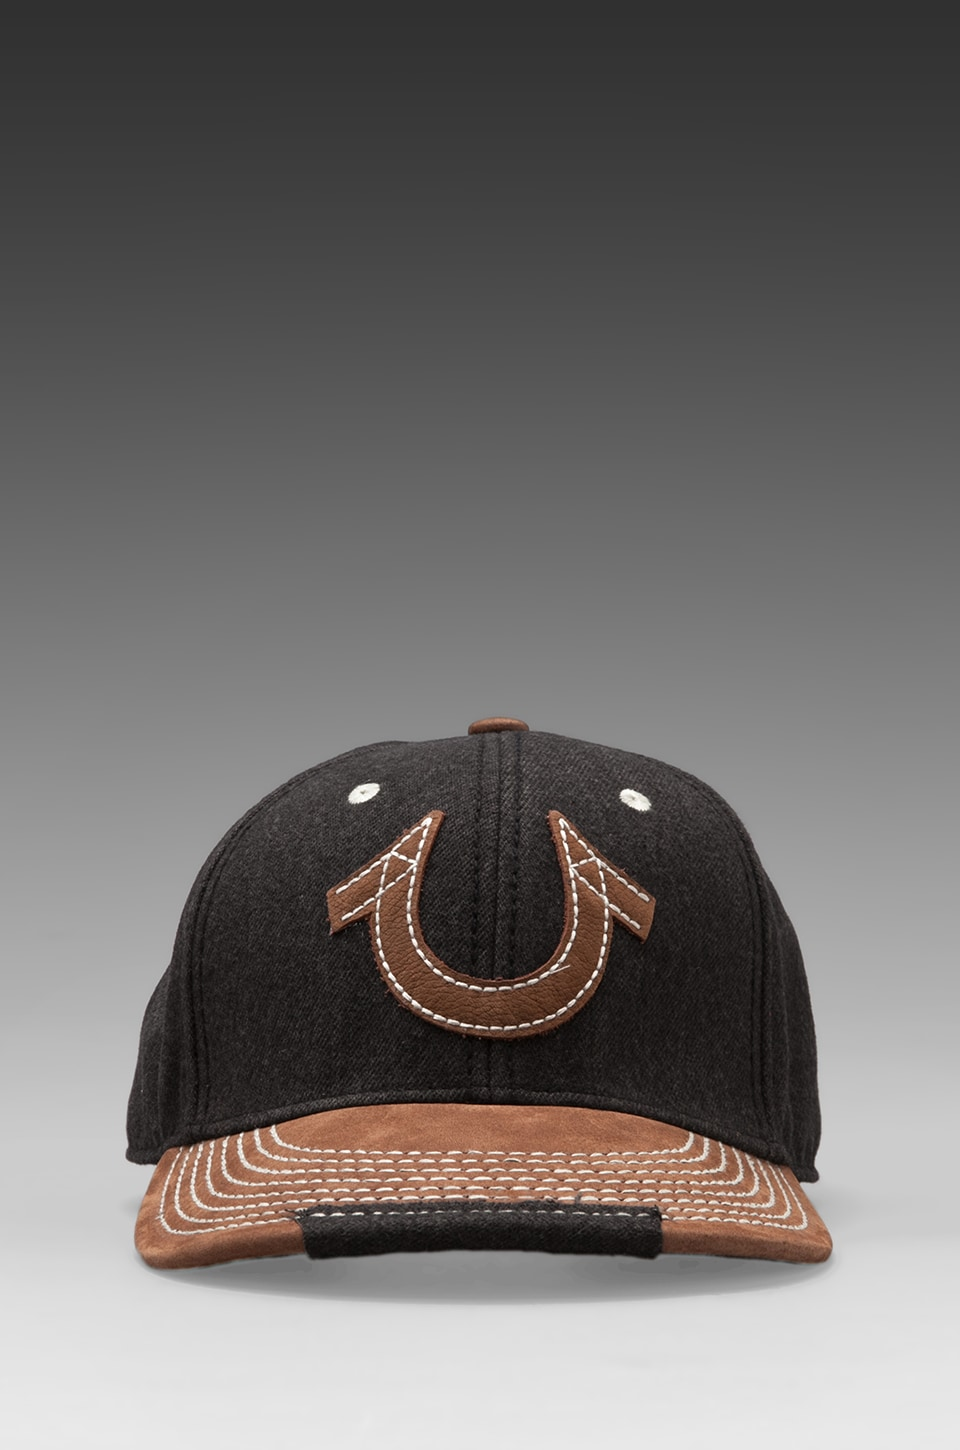 True Religion Horseshoe Snap-Back Baseball Cap in Charcoal